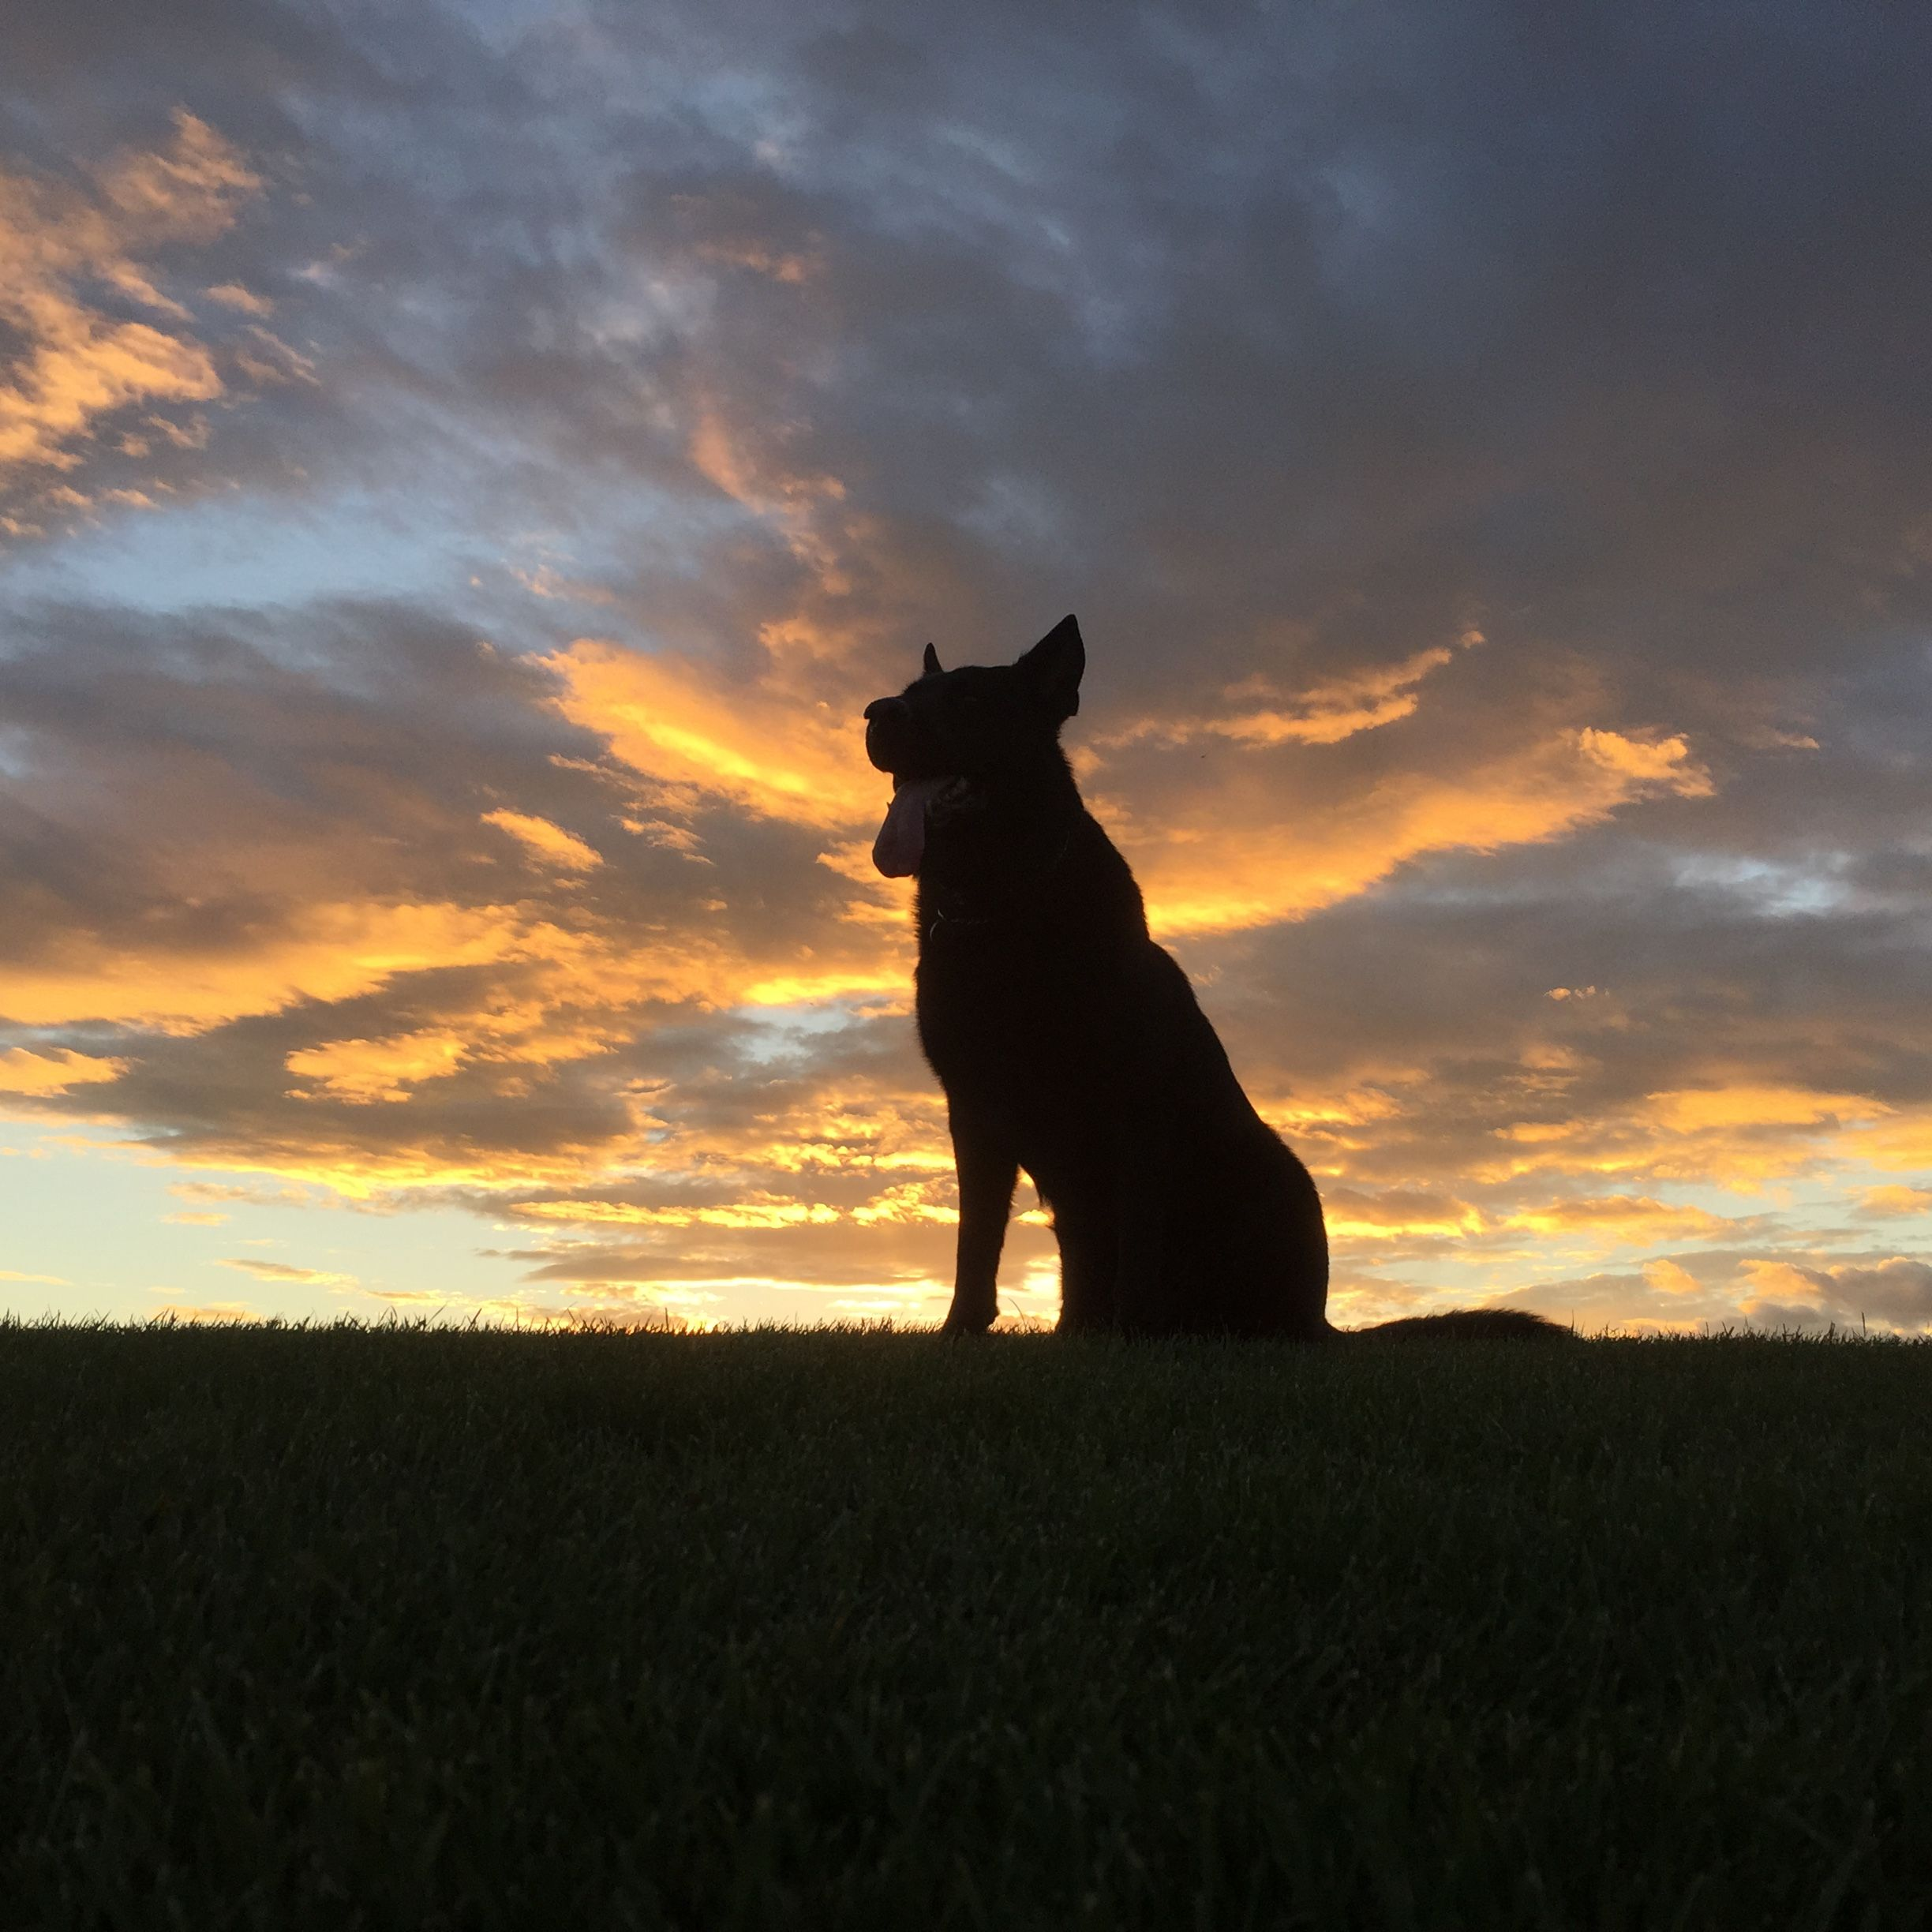 The Black Dog A Loyal German Shepherd Stands Before A Beautiful